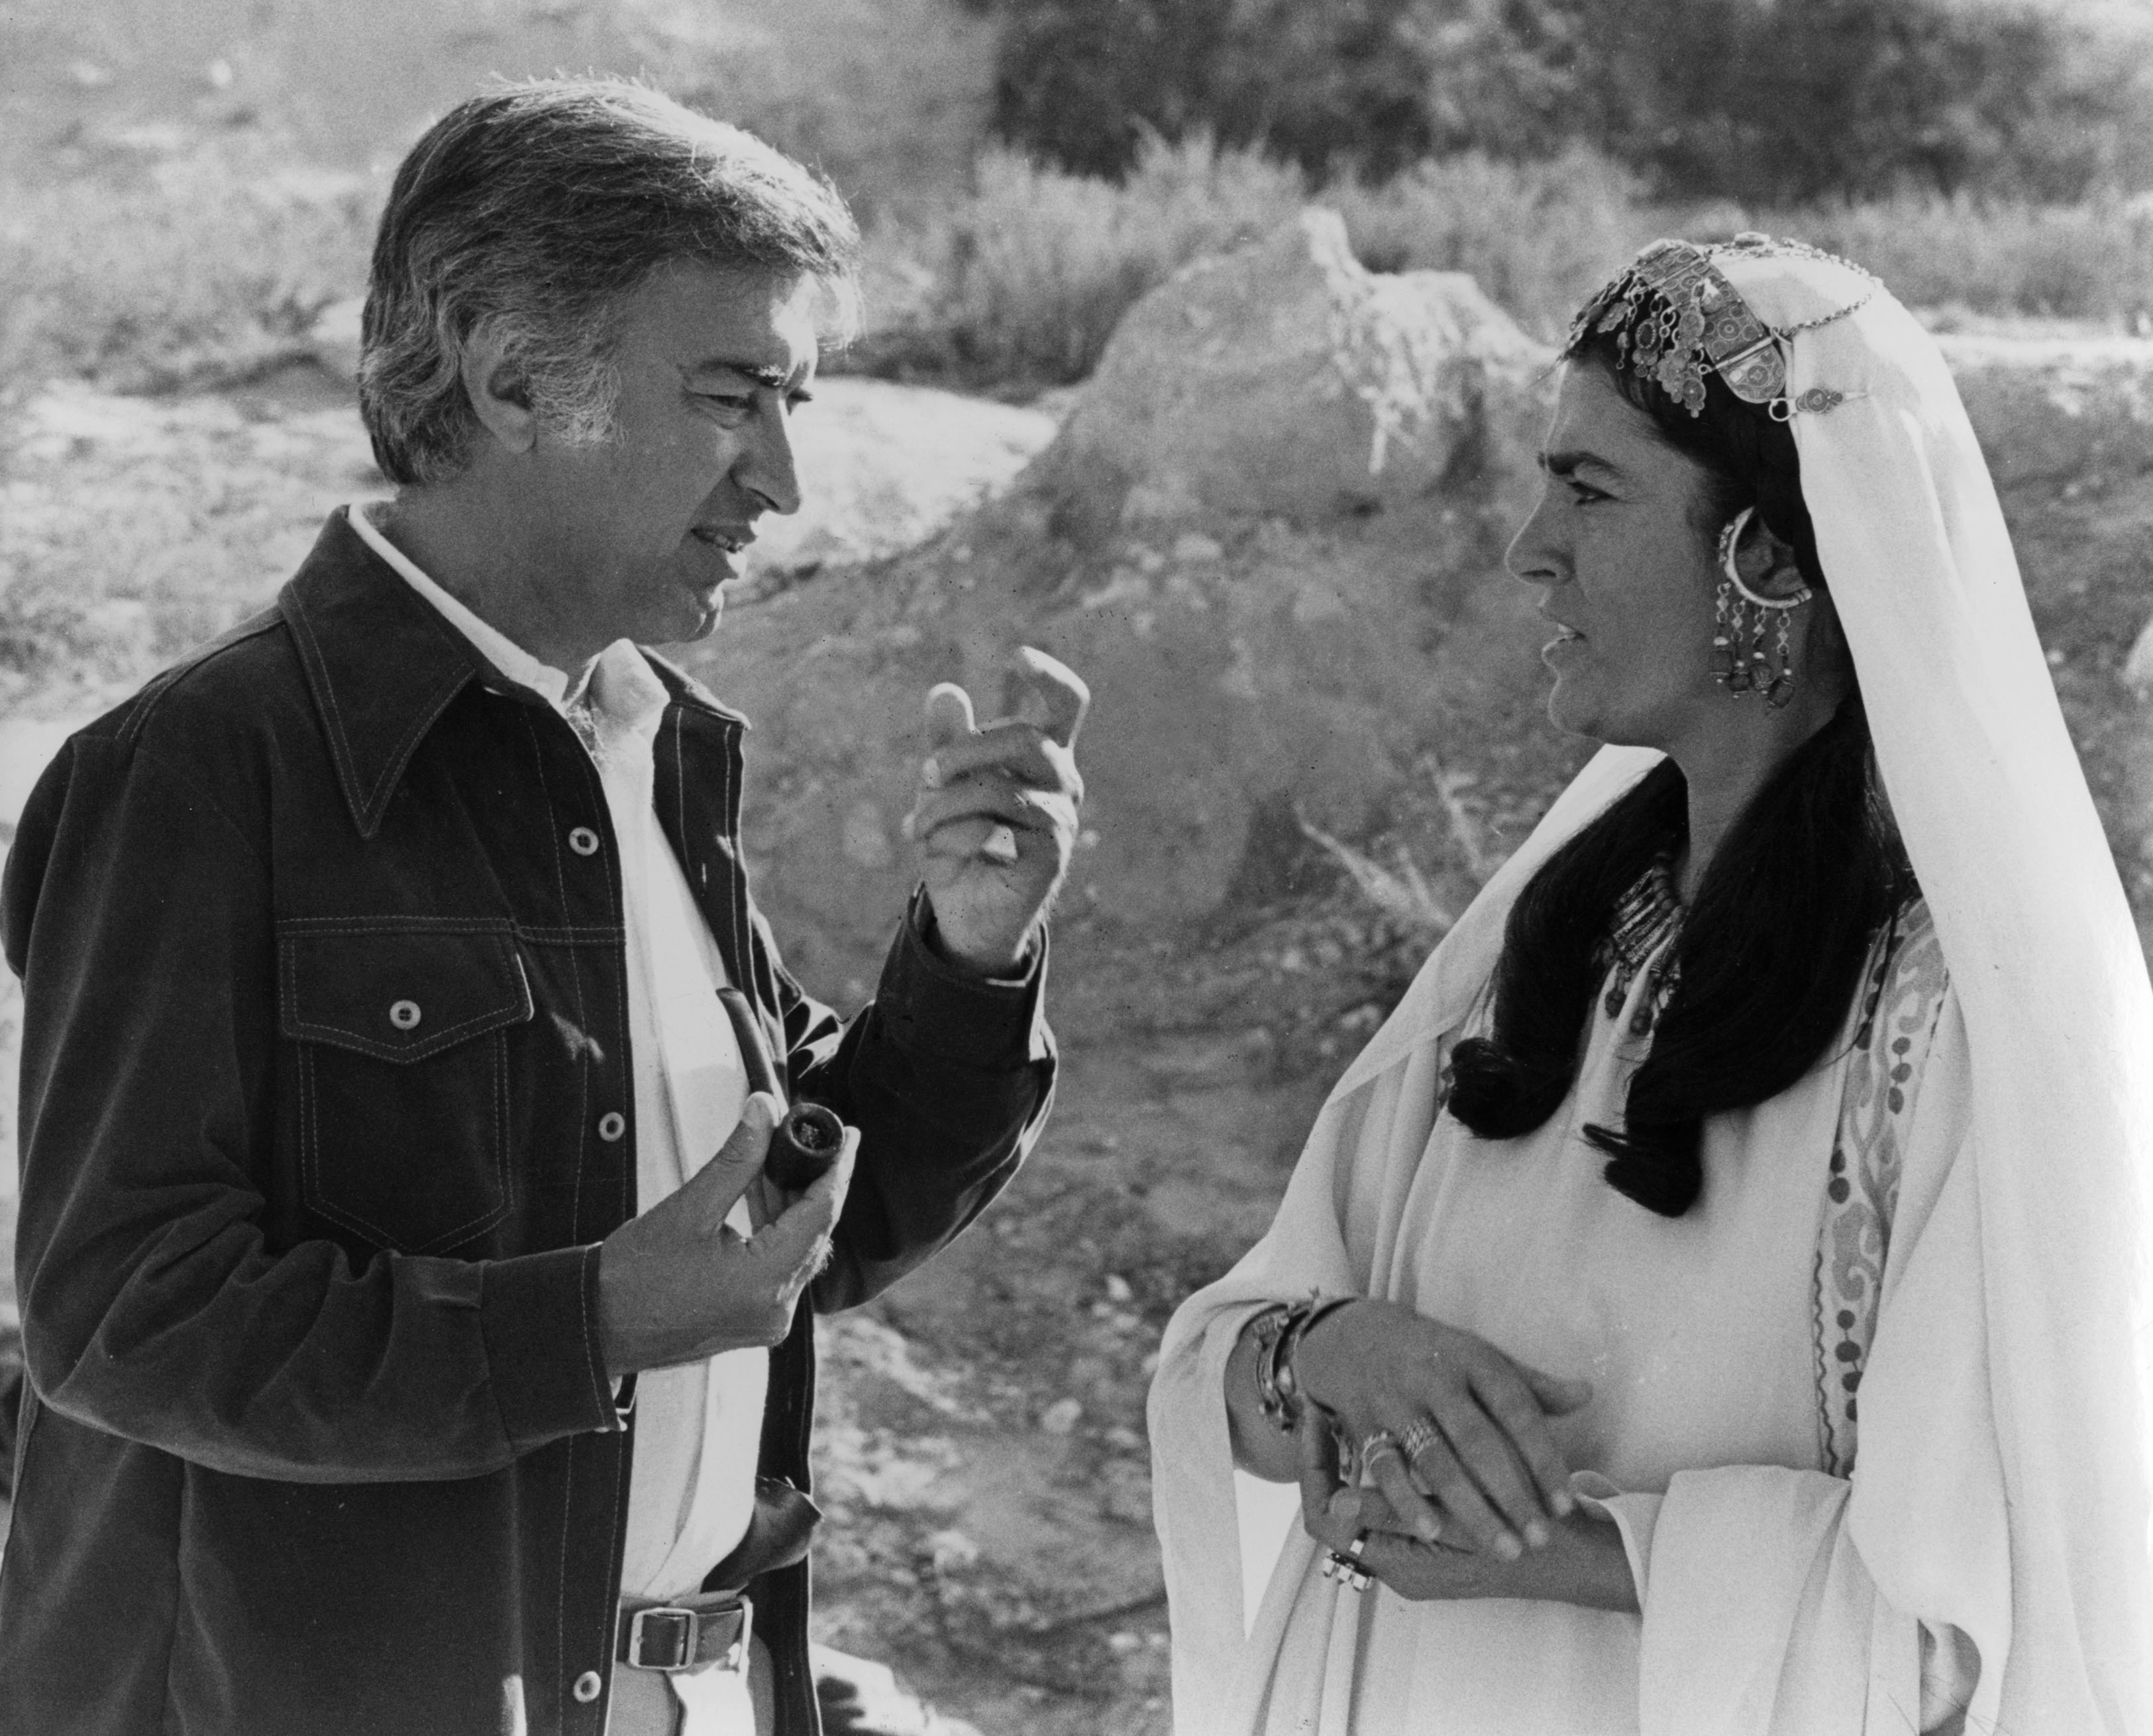 40 Years On, A Controversial Film On Islam's Origins Is Now A Classic